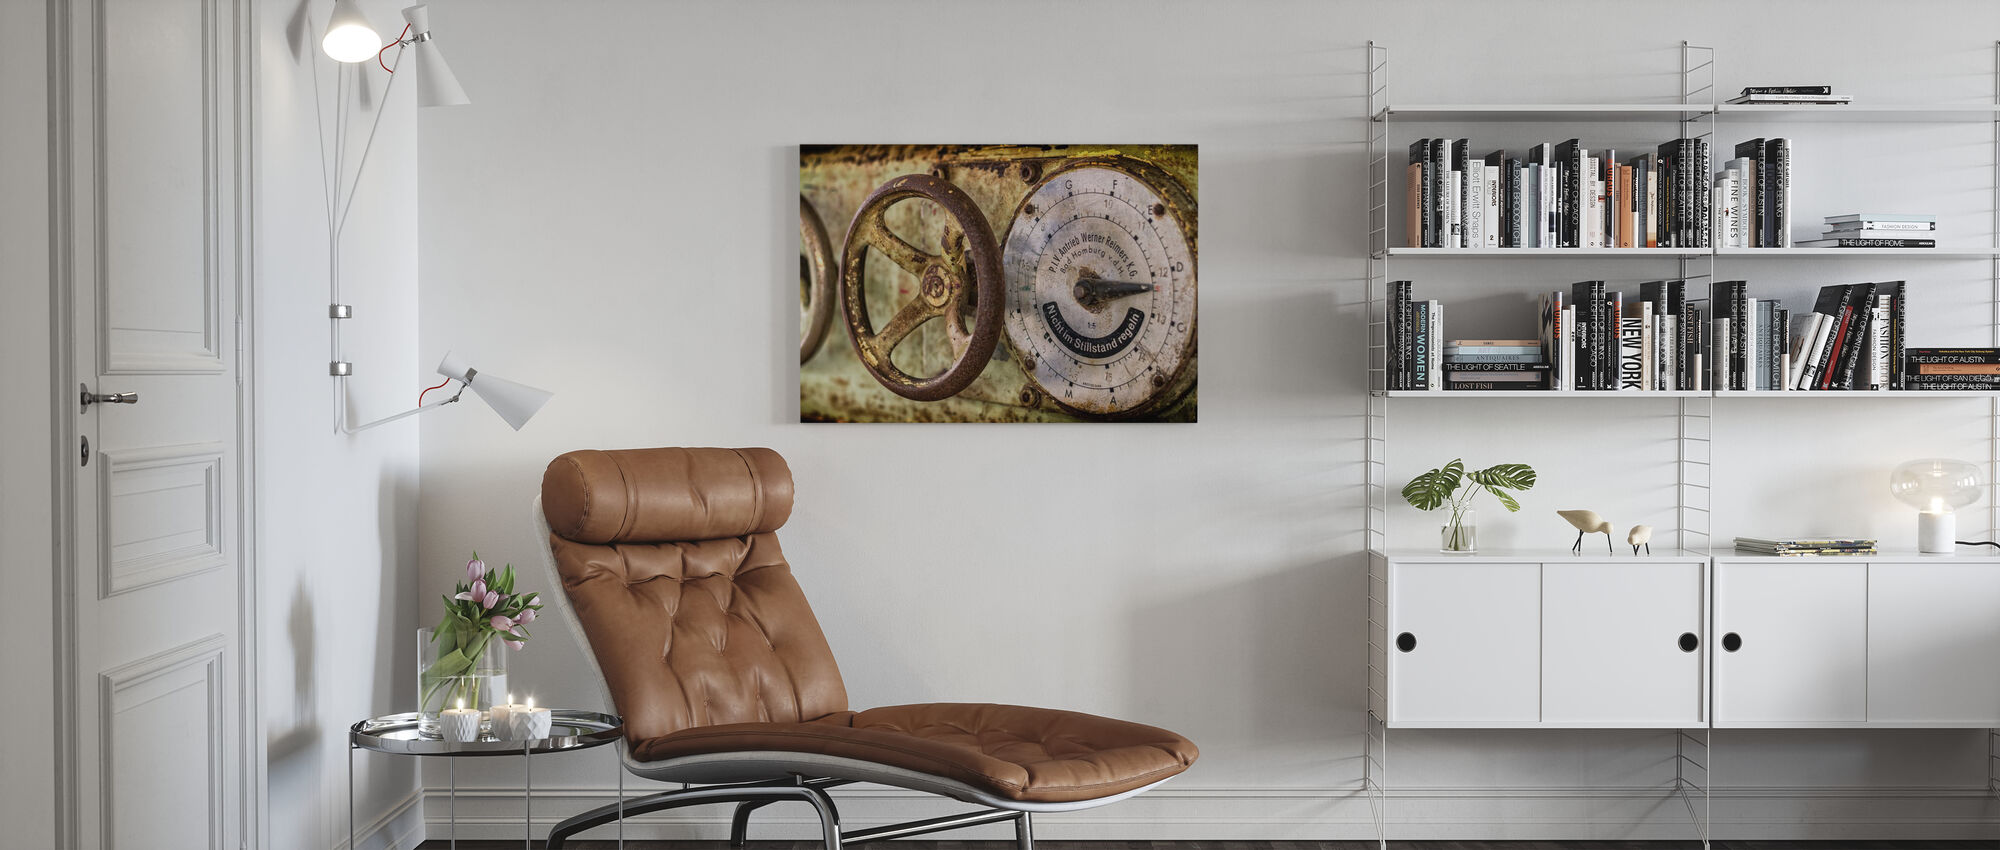 Rusty Gauge and Wheel - Canvas print - Living Room